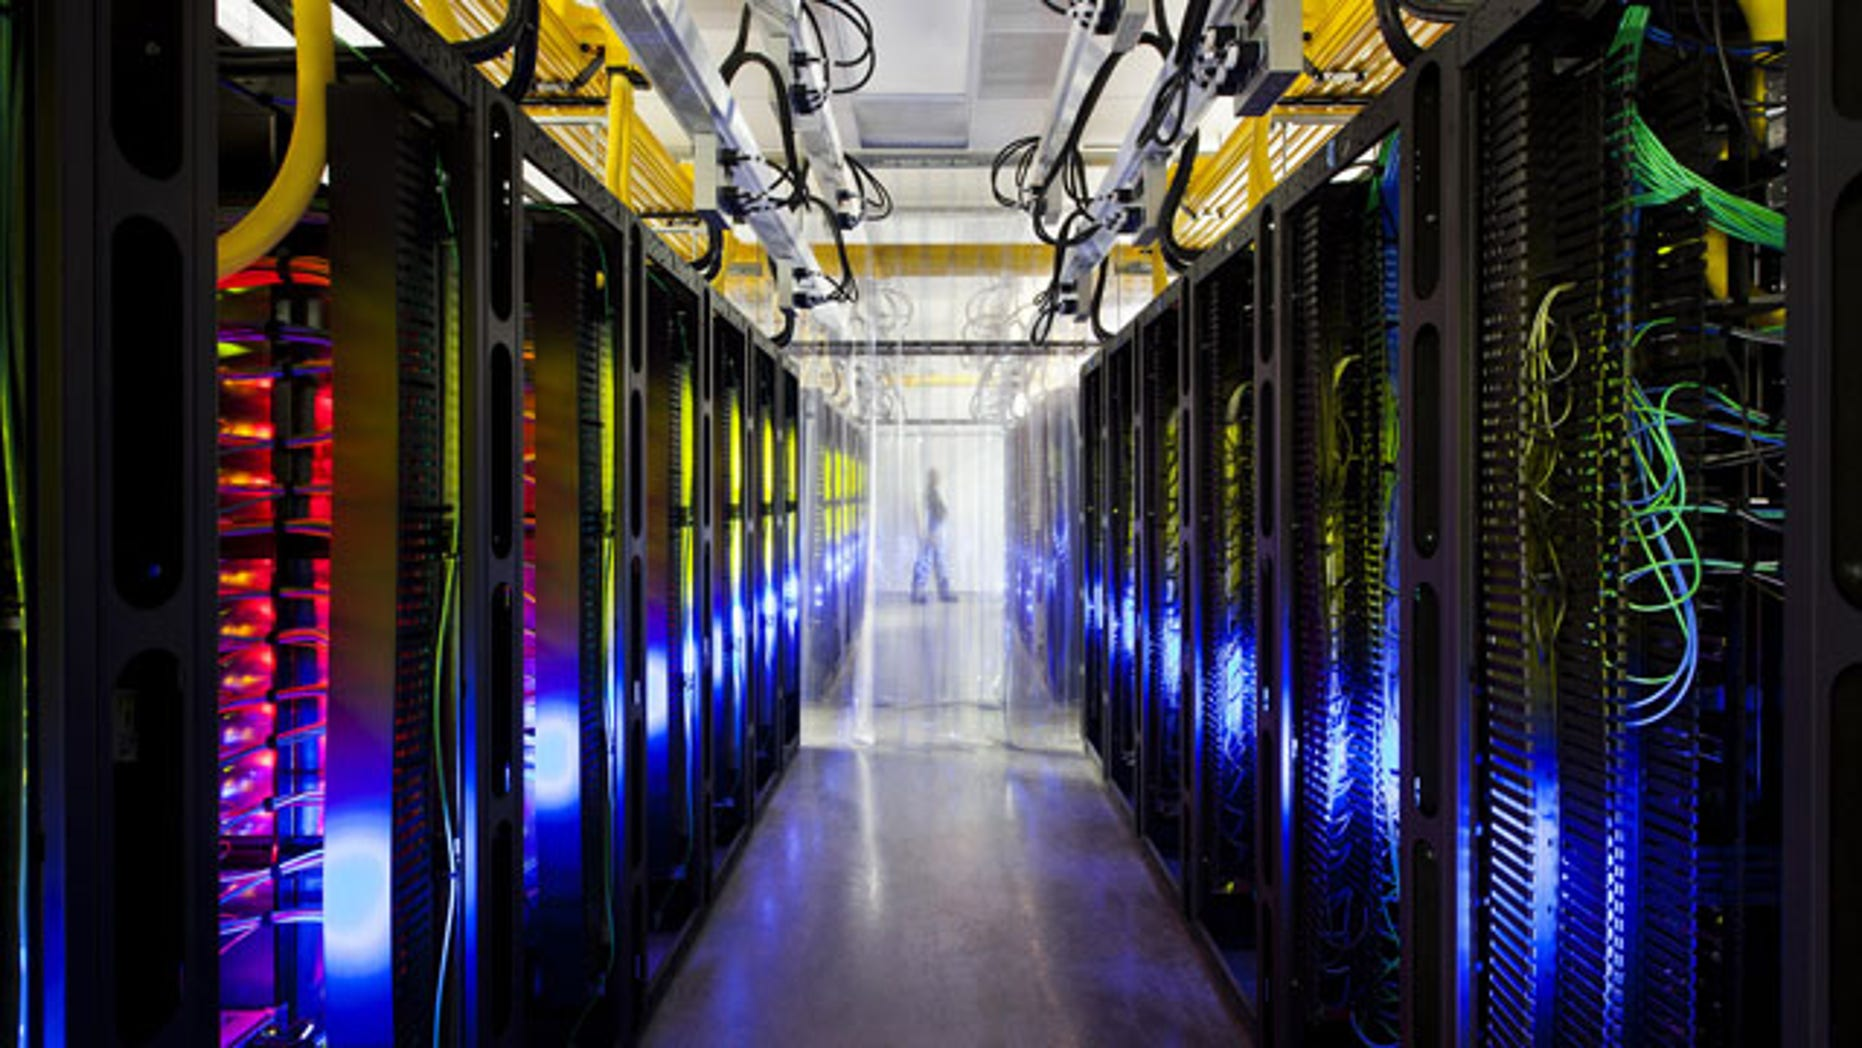 In this undated file photo made available by Google shows the campus-network room at a data center in Council Bluffs, Iowa. (AP Photo/Google, Connie Zhou, File)